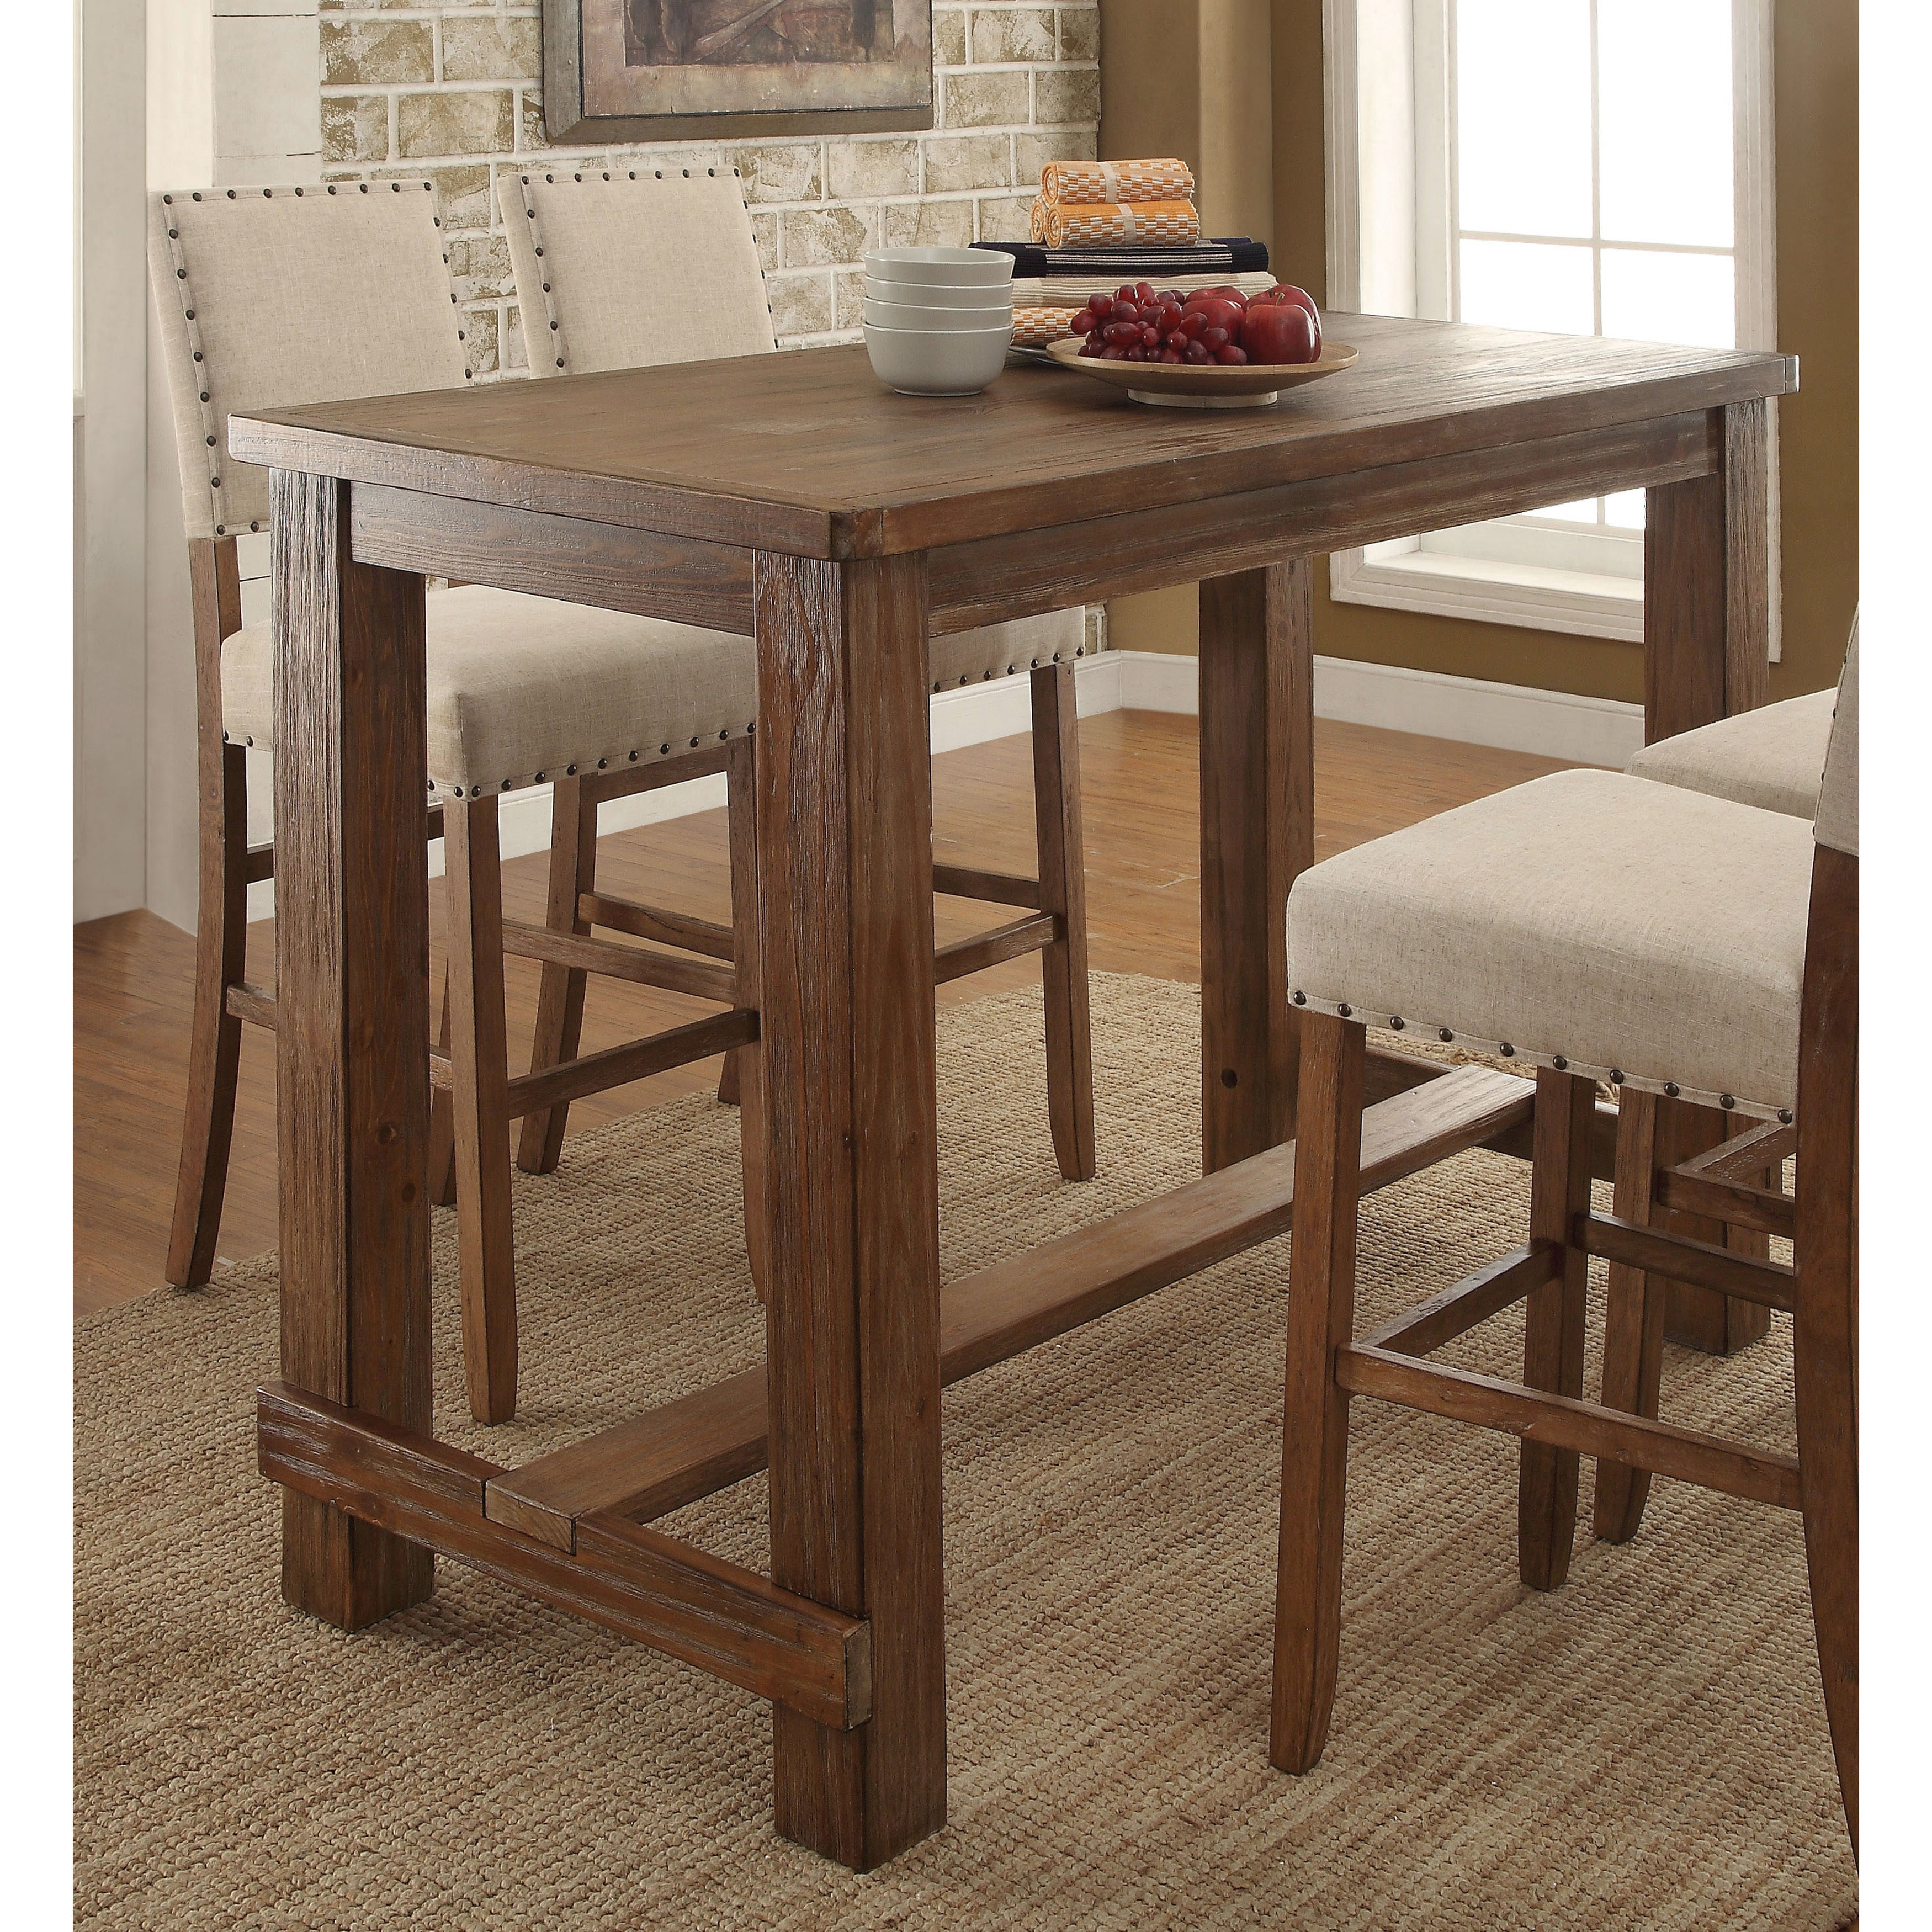 Buy bar pub tables online at overstock our best dining room buy bar pub tables online at overstock our best dining room bar furniture deals watchthetrailerfo